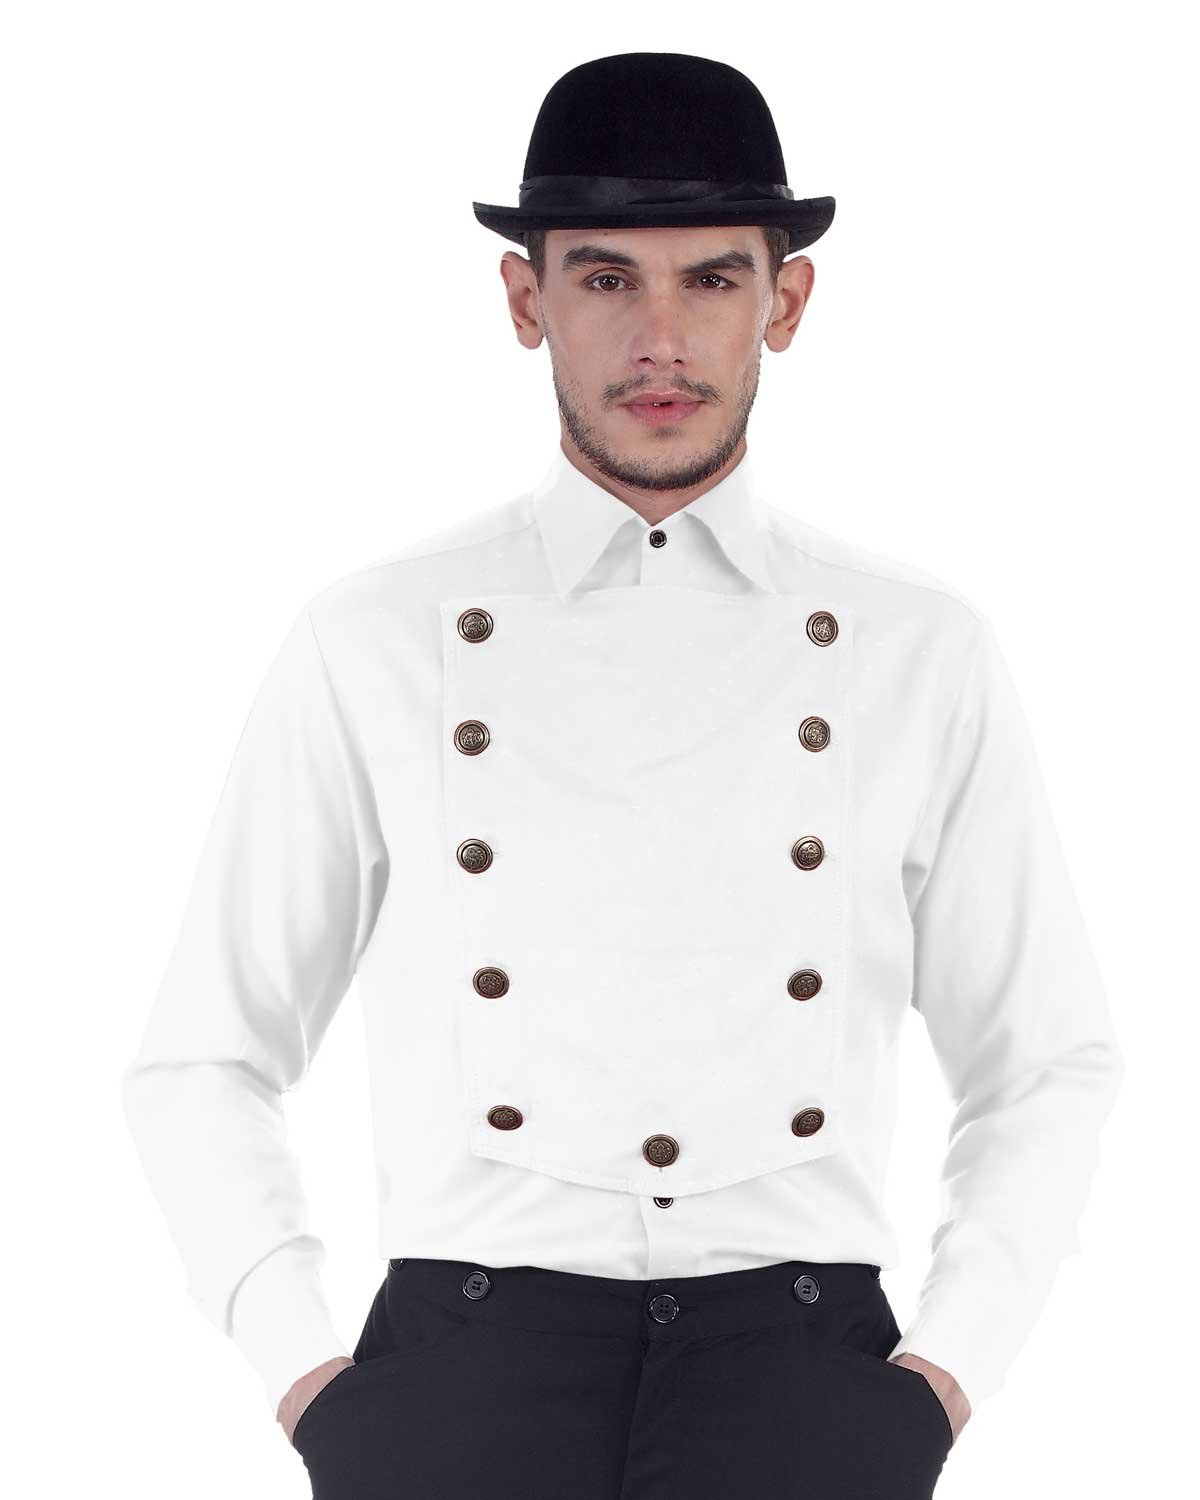 ThePirateDressing Steampunk Victorian Cosplay Costume Mens Linen Airship Shirt C1290 (White) (X-Large) by ThePirateDressing (Image #2)